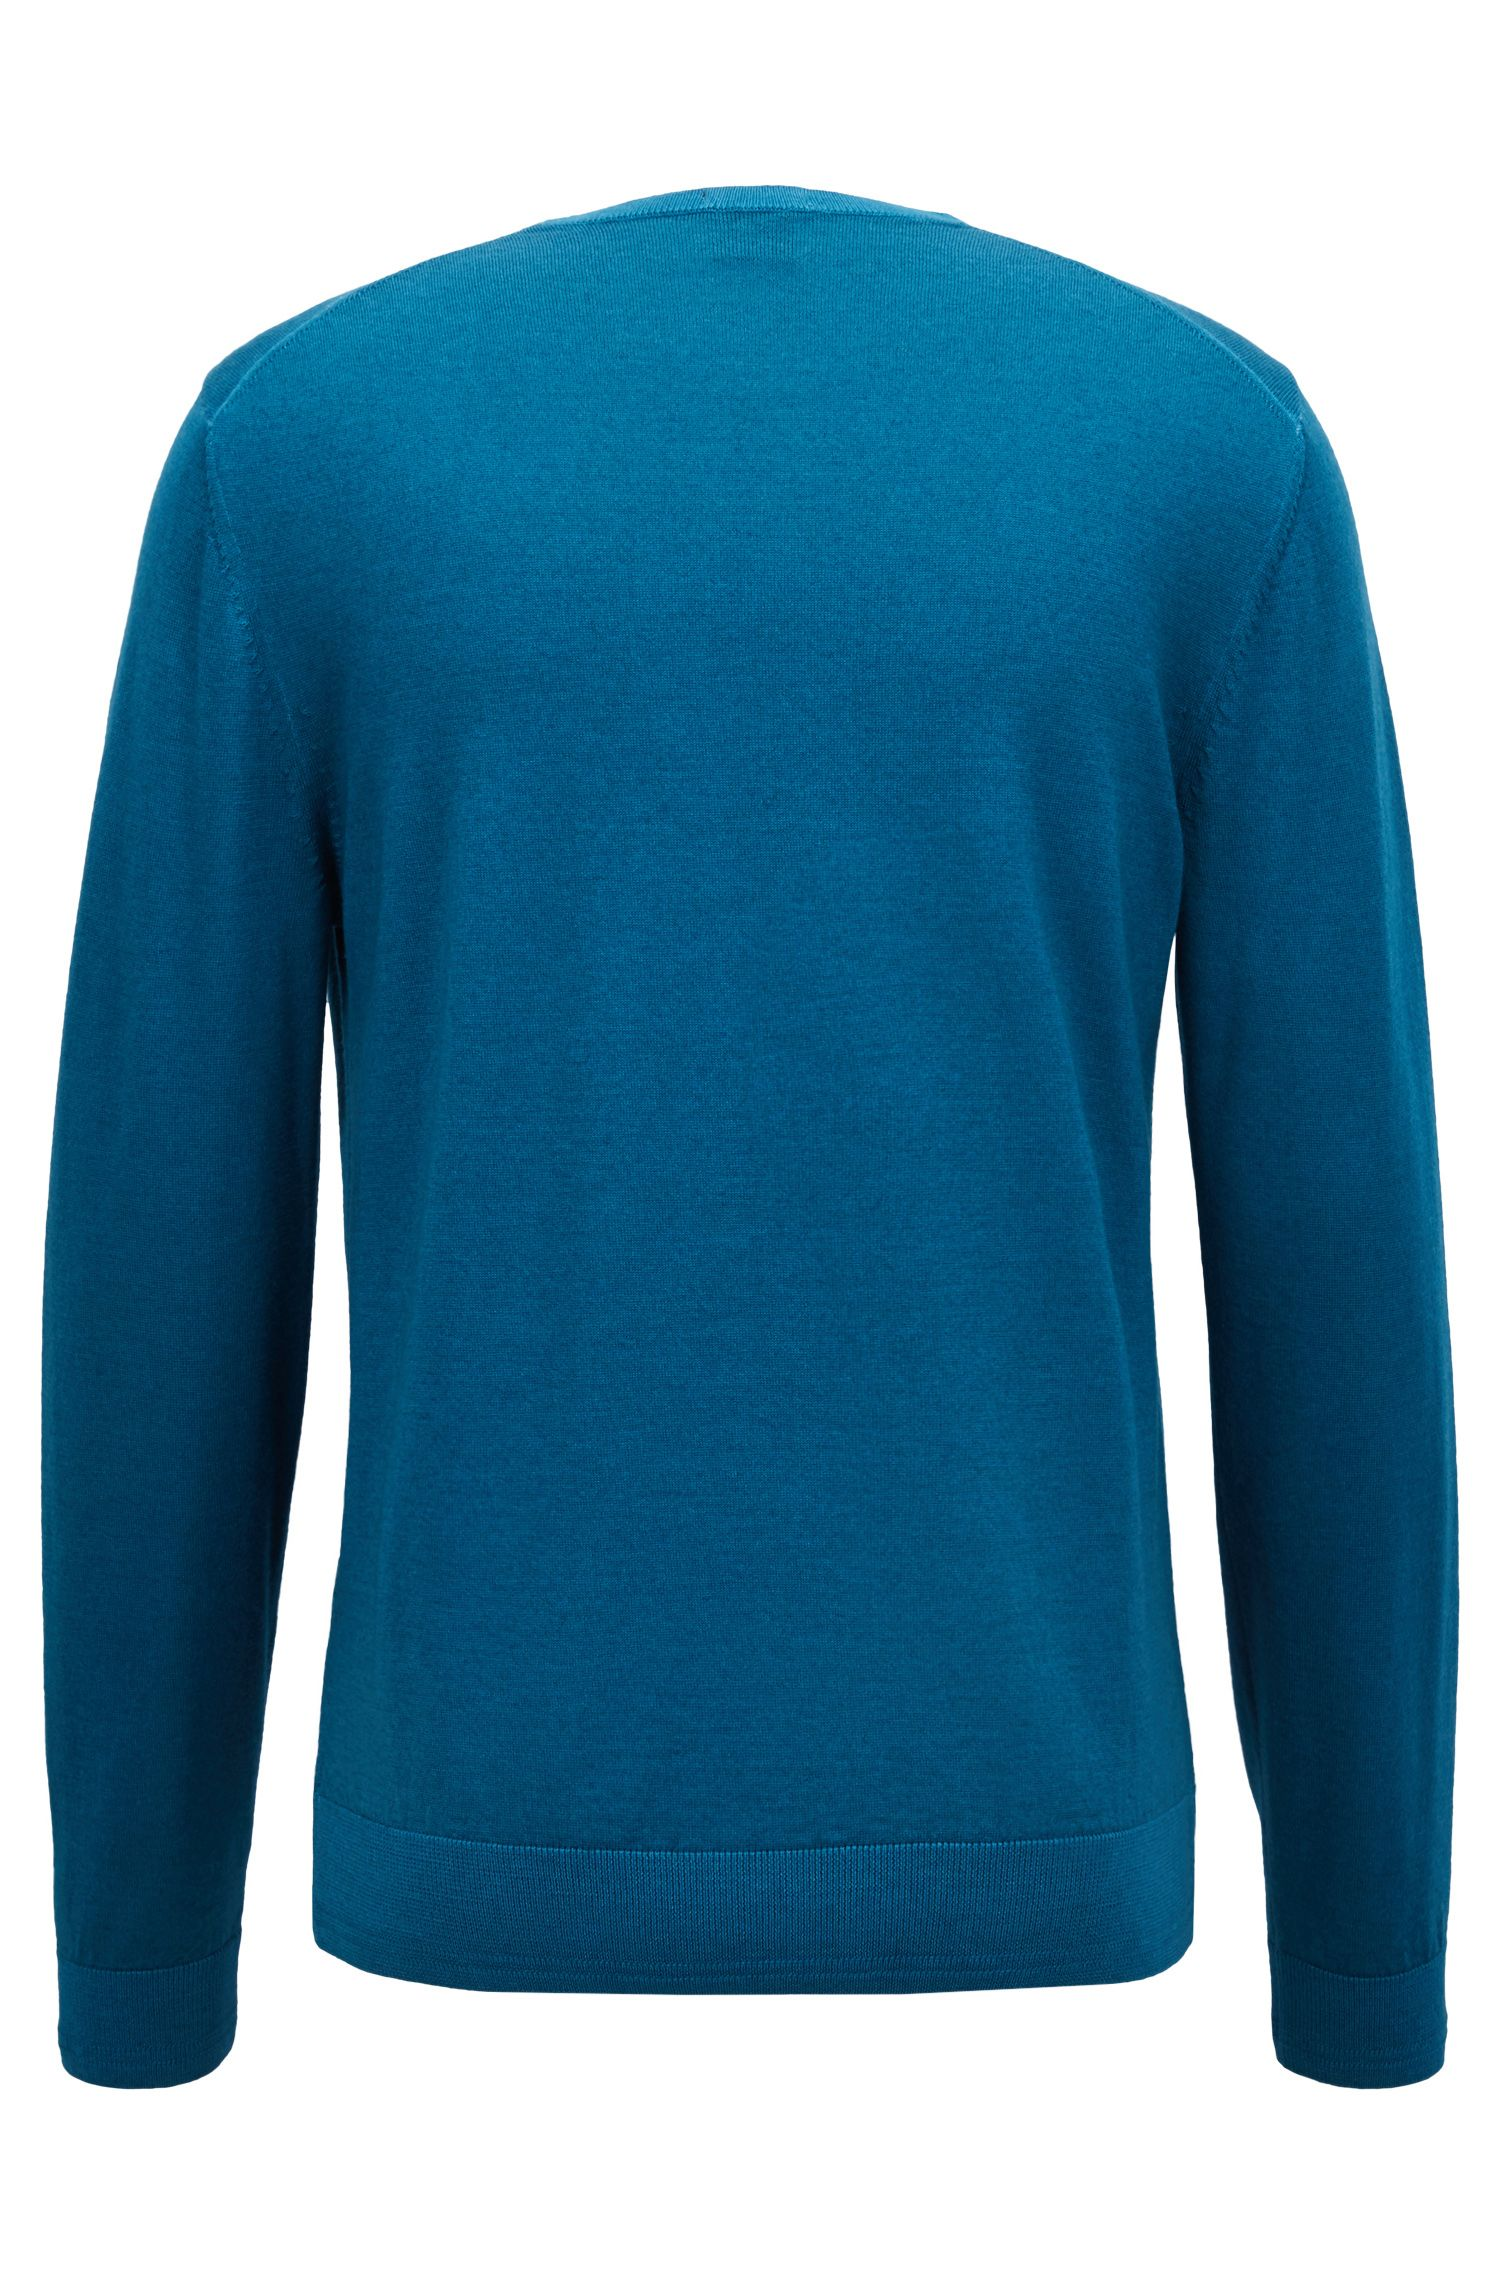 Garment-dyed sweater in virgin wool blended with silk, Turquoise